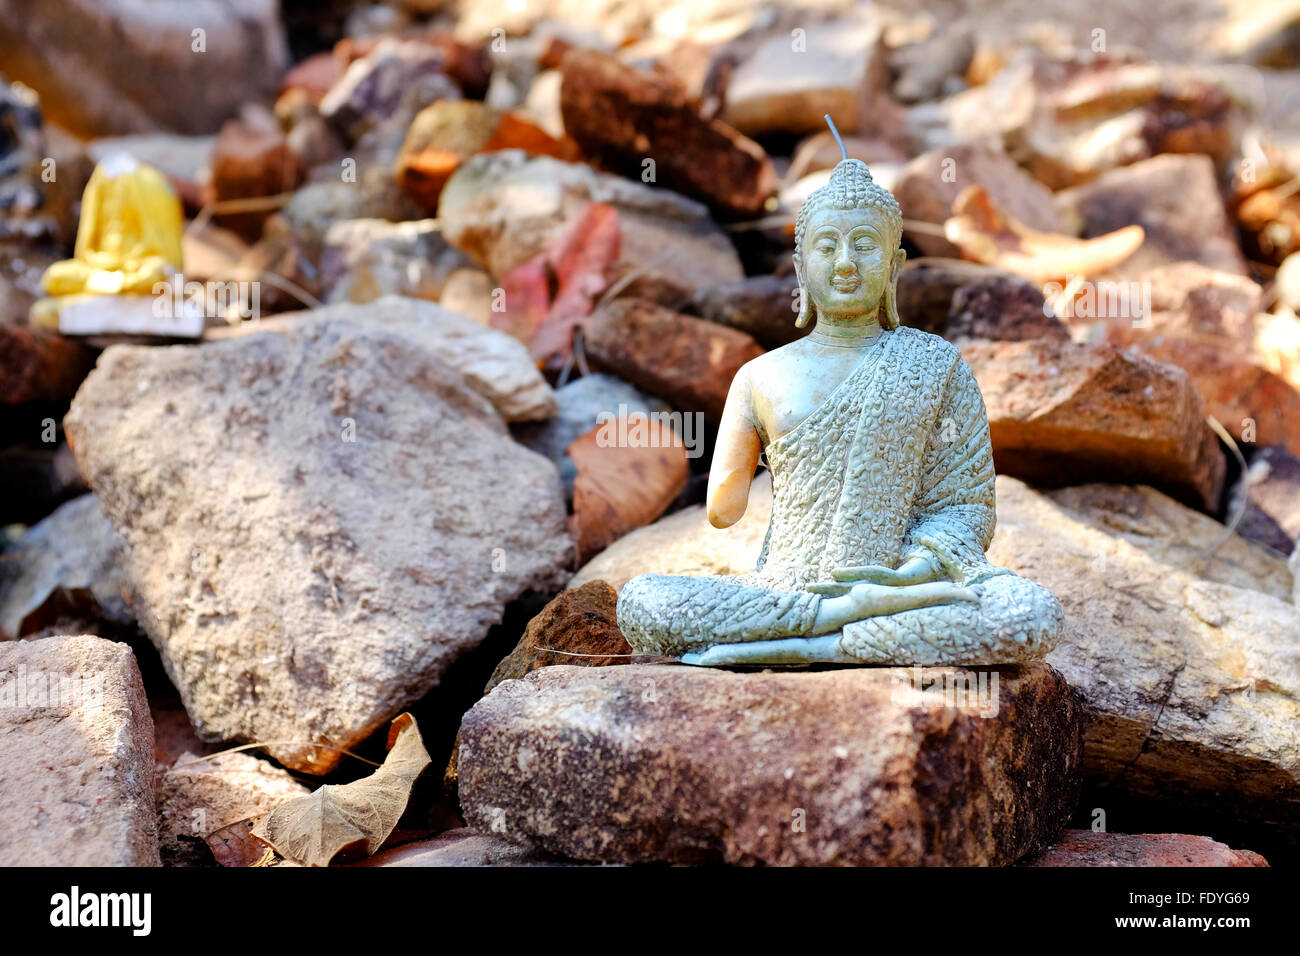 Figurine of Buddha in the Doi Suthep-Pui National Park, Chiang Mai, Thailand - Stock Image